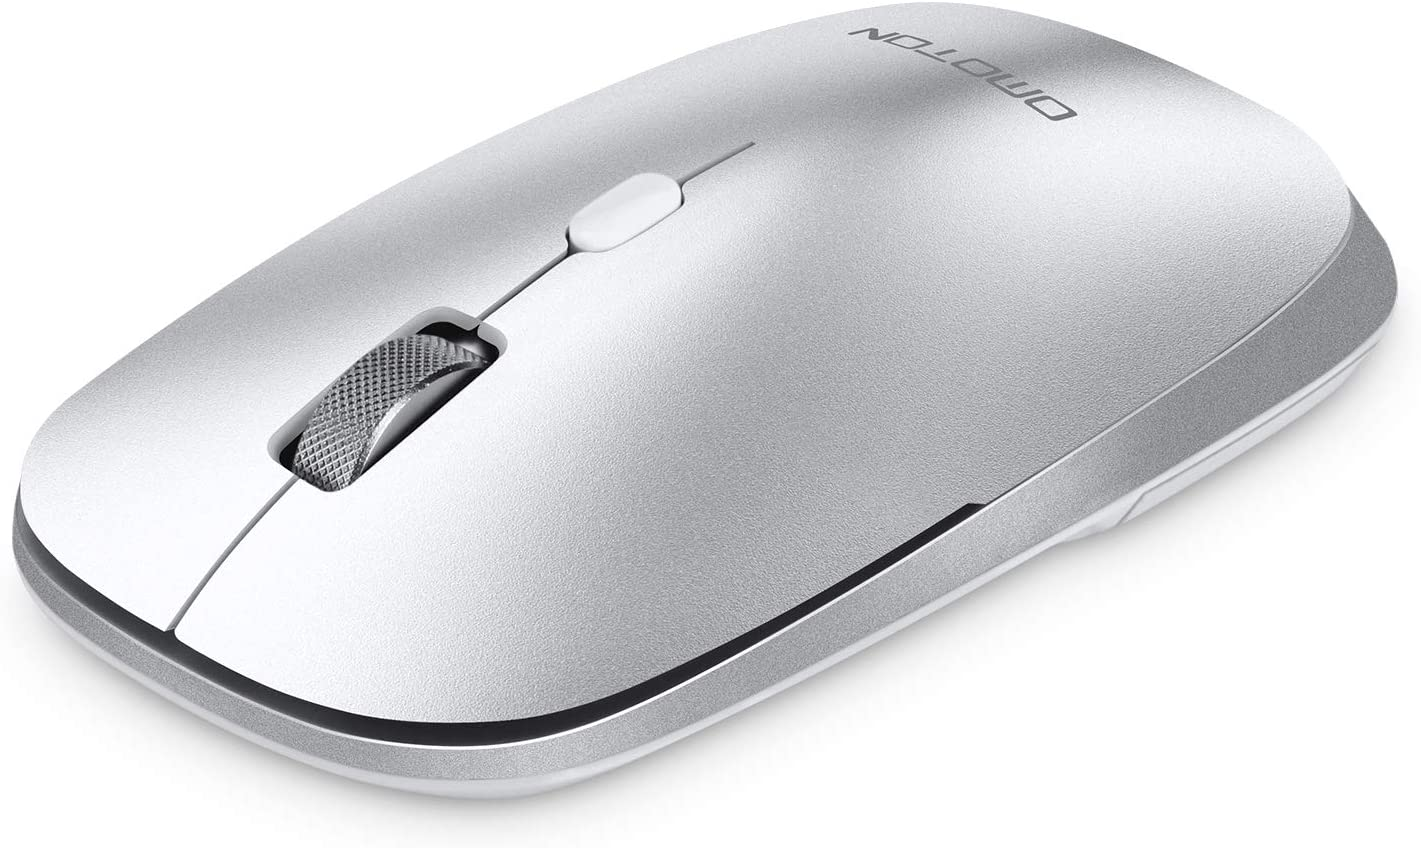 OMOTON Bluetooth Mouse for MacBook Pro/MacBook Air, Dual-Mode (BT 3.0 + BT 5.0) Wireless Mouse,3 Adjustable DPI, Compatible with Mac Series/ iMac/iPad/ Laptop/ PC (Silver)